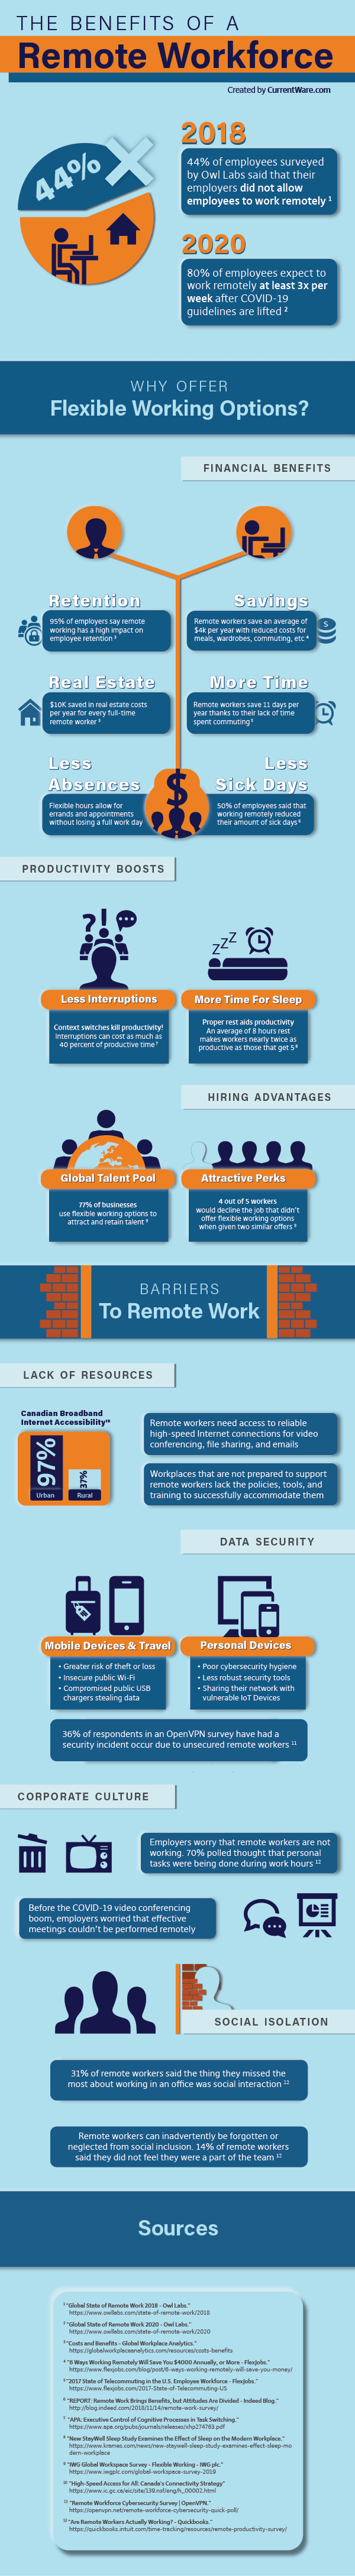 Inforgraphic by CurrentWare showing the advantages and disadvantages of remote working for employers and employees alike.